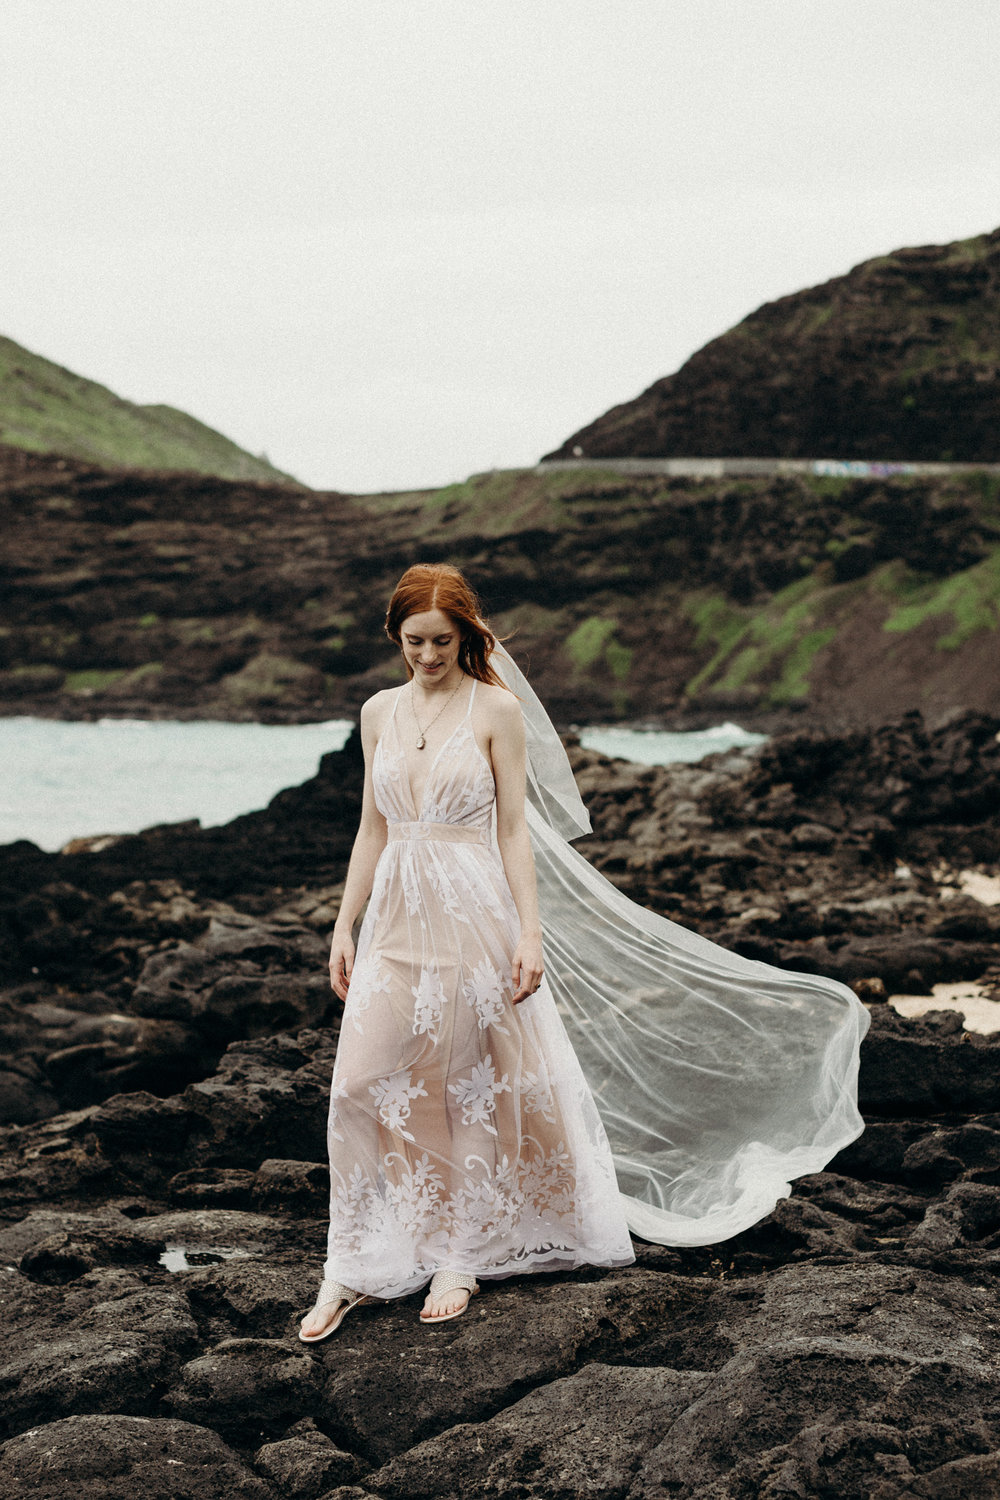 hawaii-wedding-photographer-keani-bakula-31.jpg